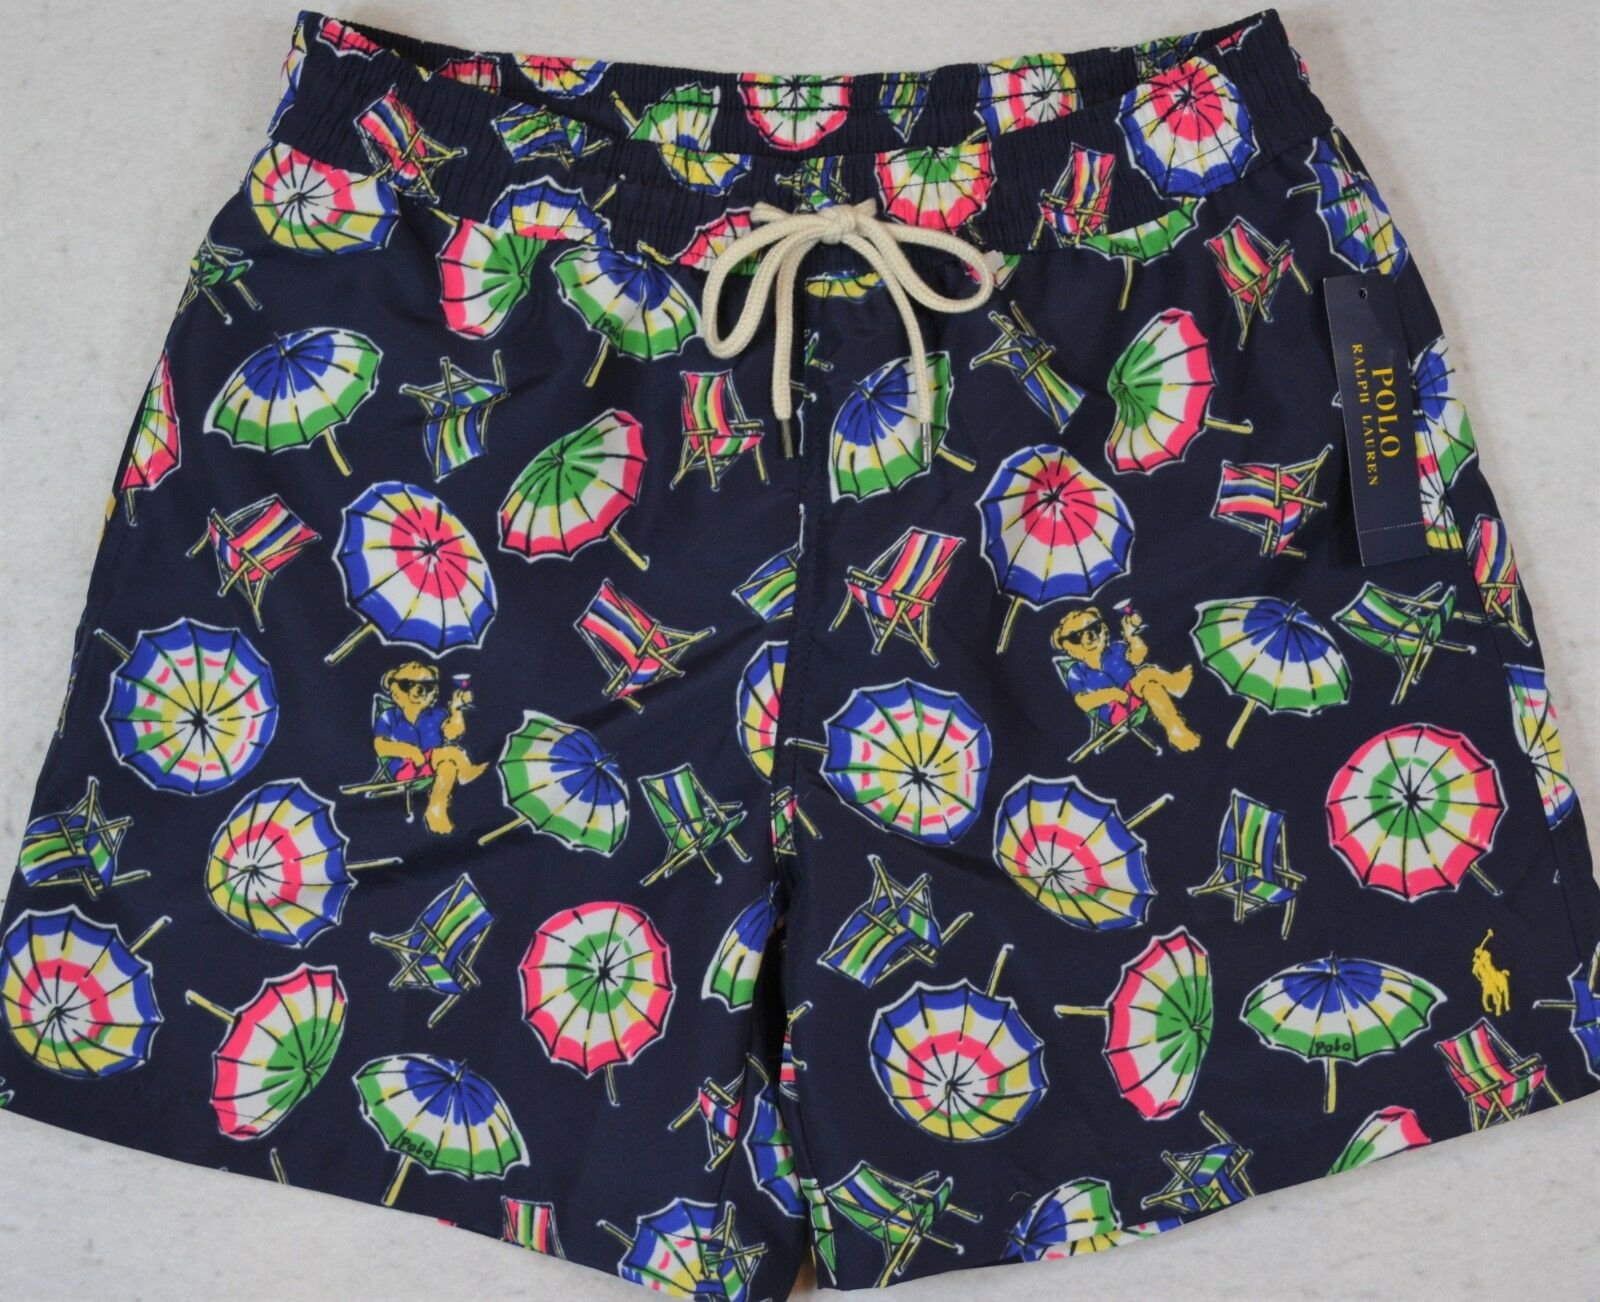 Polo Ralph Lauren Swim Trunks Briefs Bear Umbrella Shorts M Medium NWT